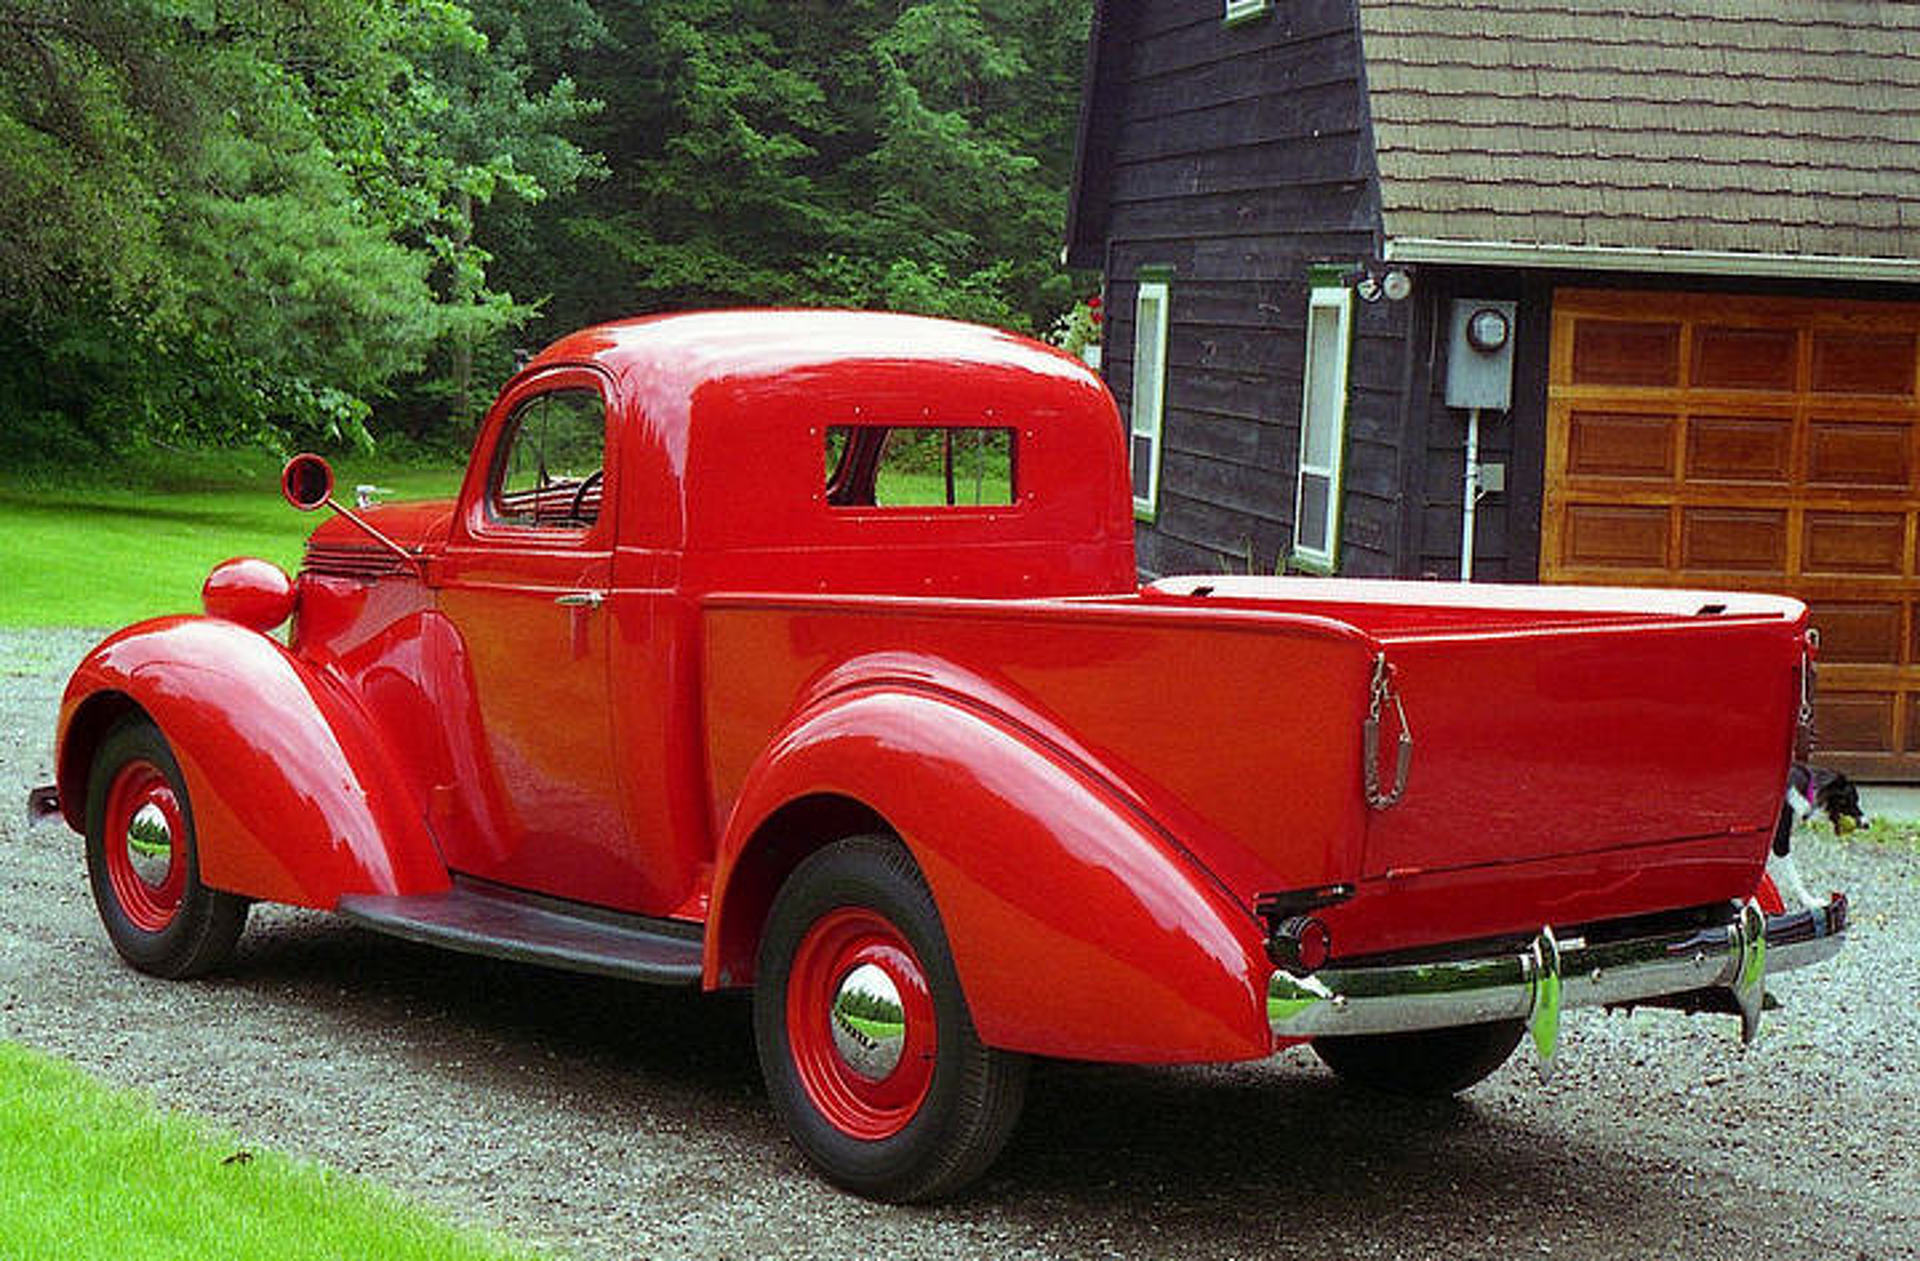 1938 Ford Coe Truck For Sale >> 1938 Studebaker Truck For Sale | Autos Post